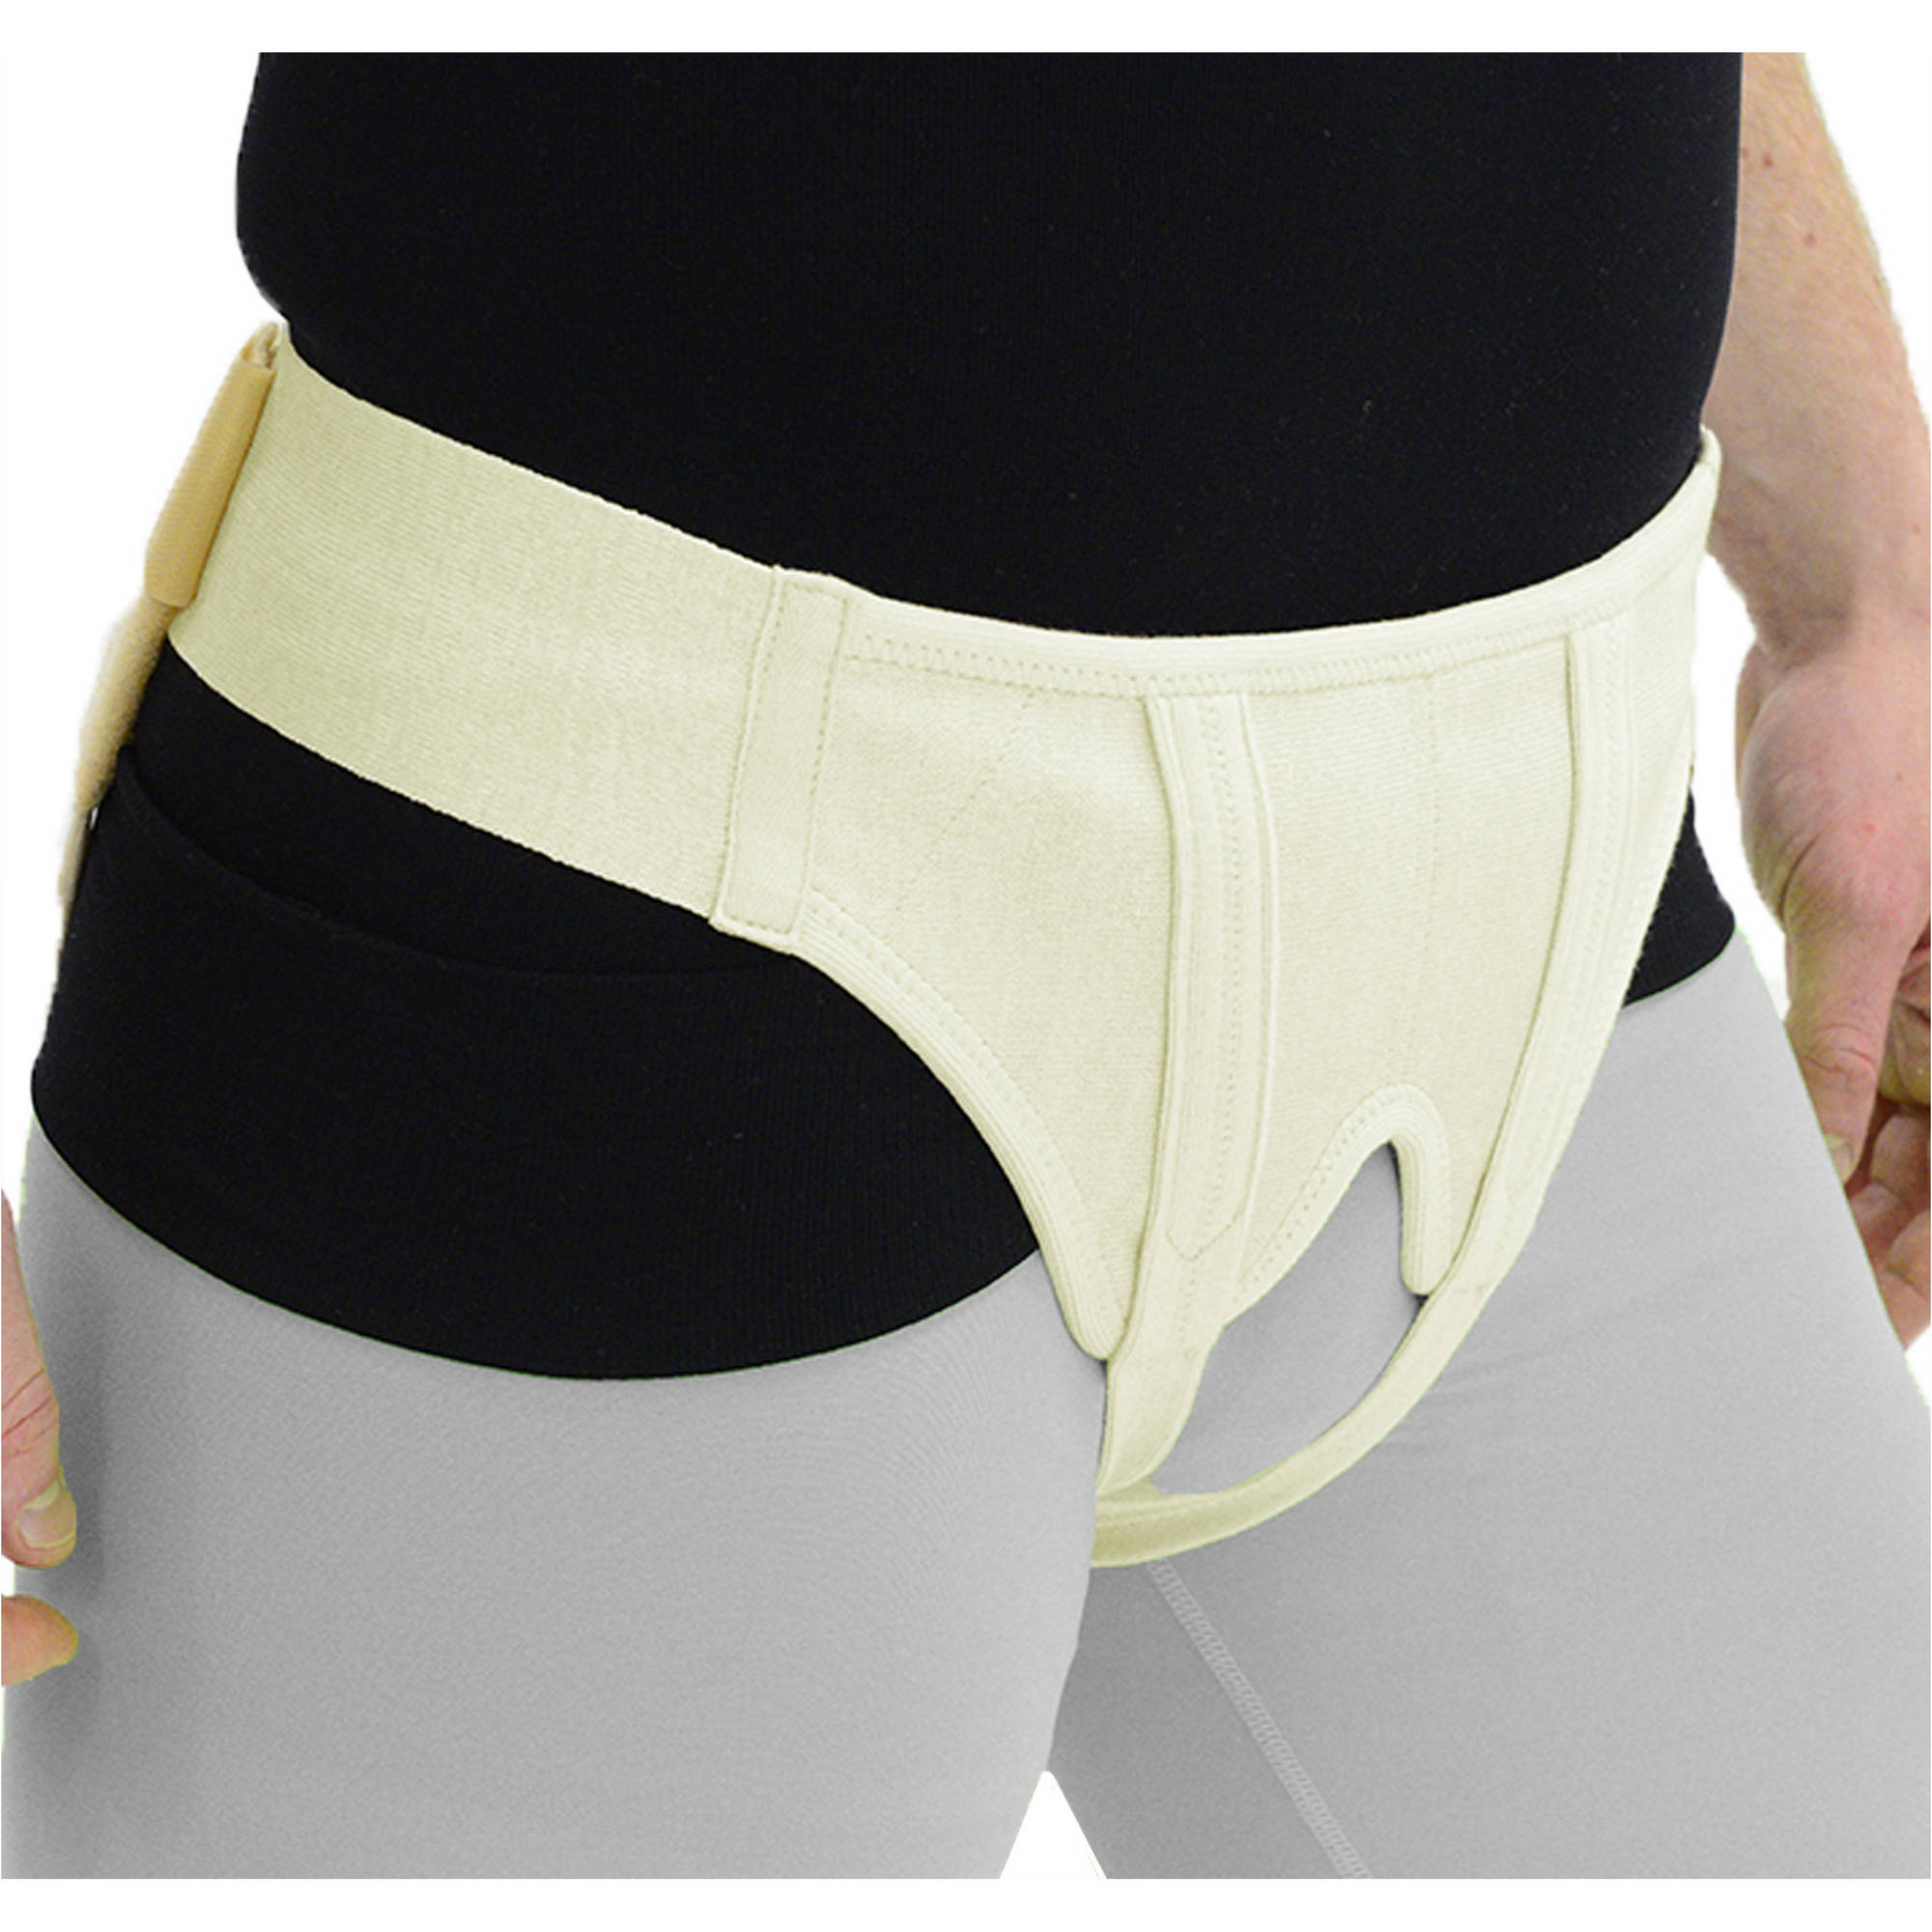 ITA-MED Deluxe Hernia Support - Double Sided with Removable Inserts: HS-484